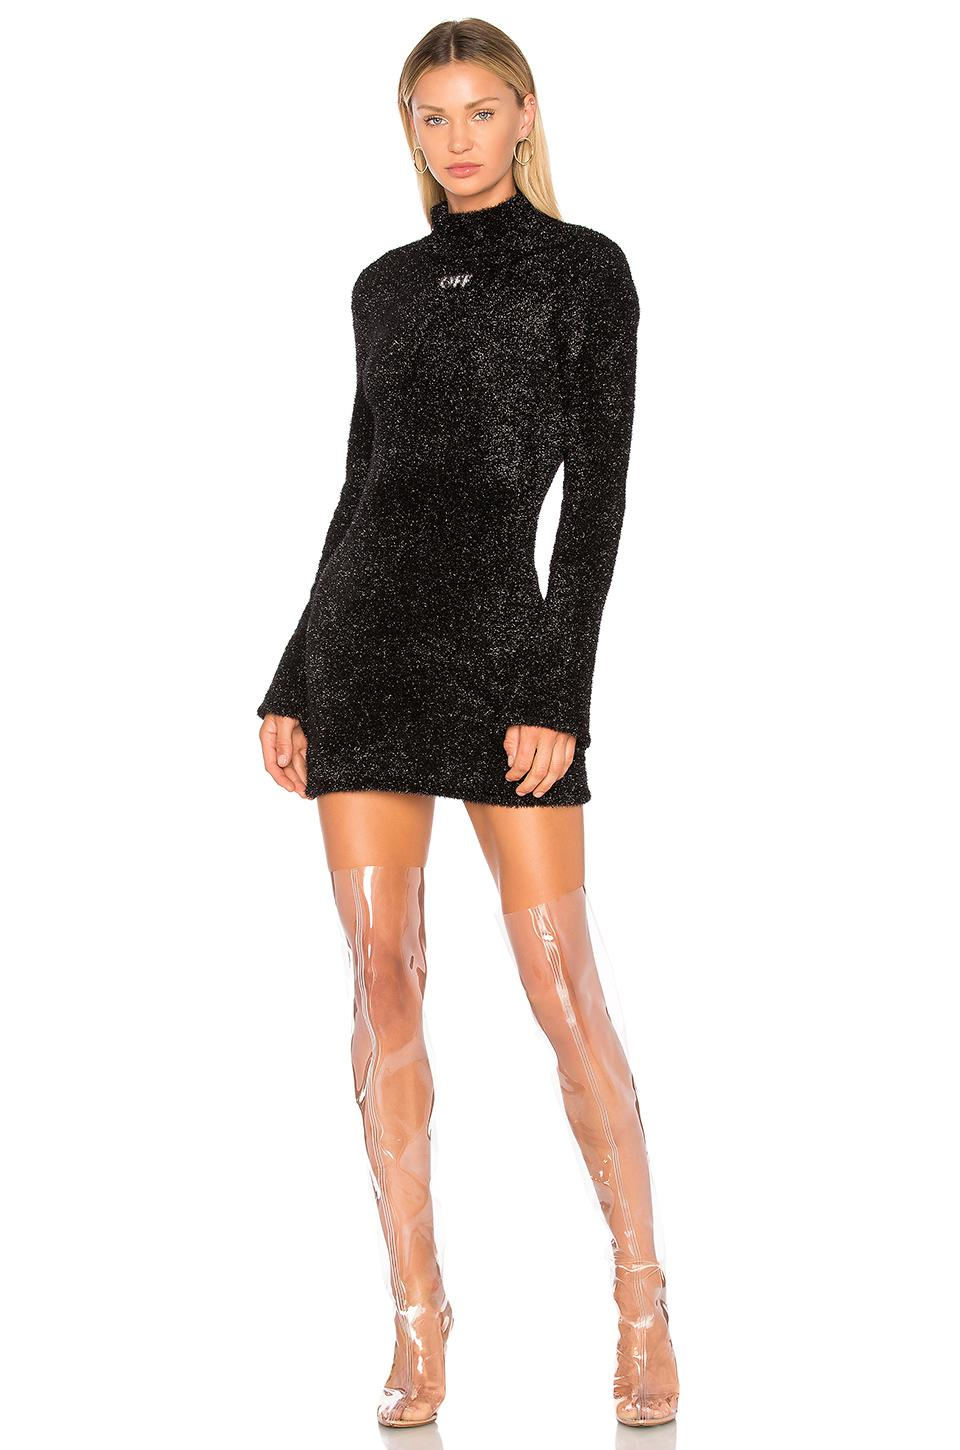 Lyst - Off-White c o Virgil Abloh Sexy Knit Dress in Black 7e50351b8